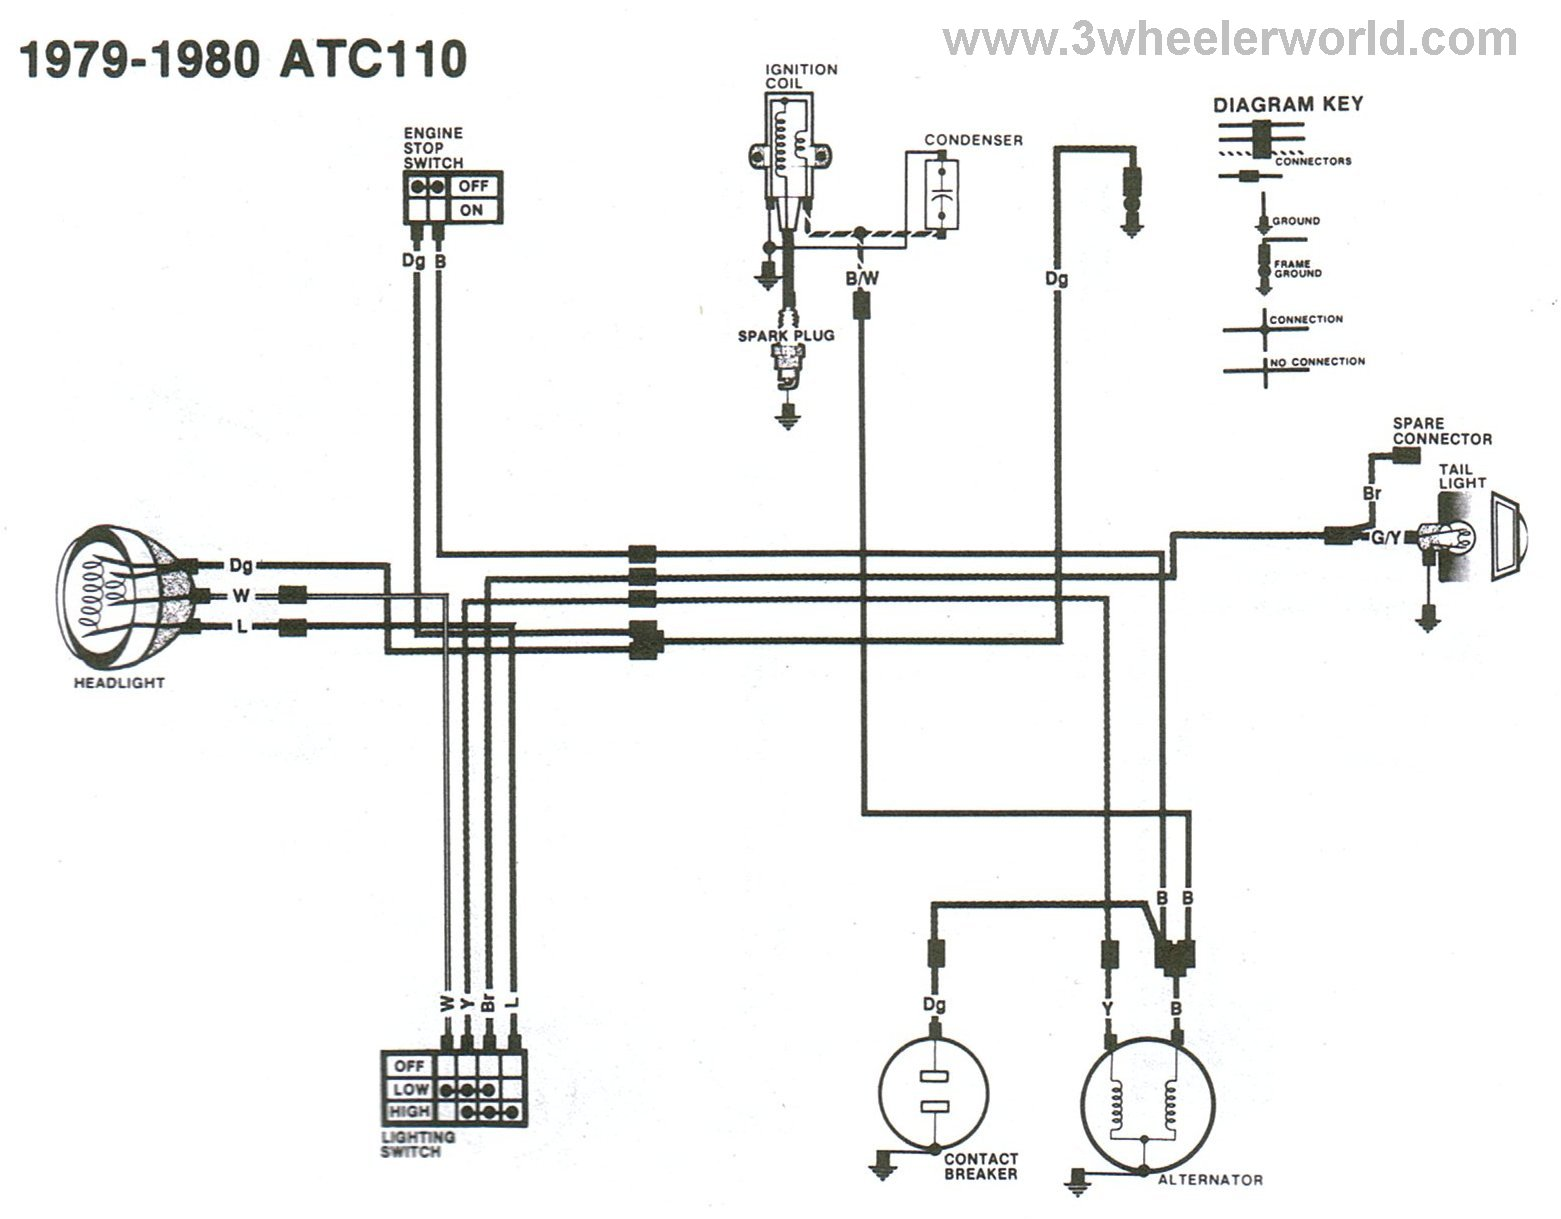 ATC110x79Thru80 3 wheeler world tech help honda wiring diagrams lt250r wiring diagram at reclaimingppi.co